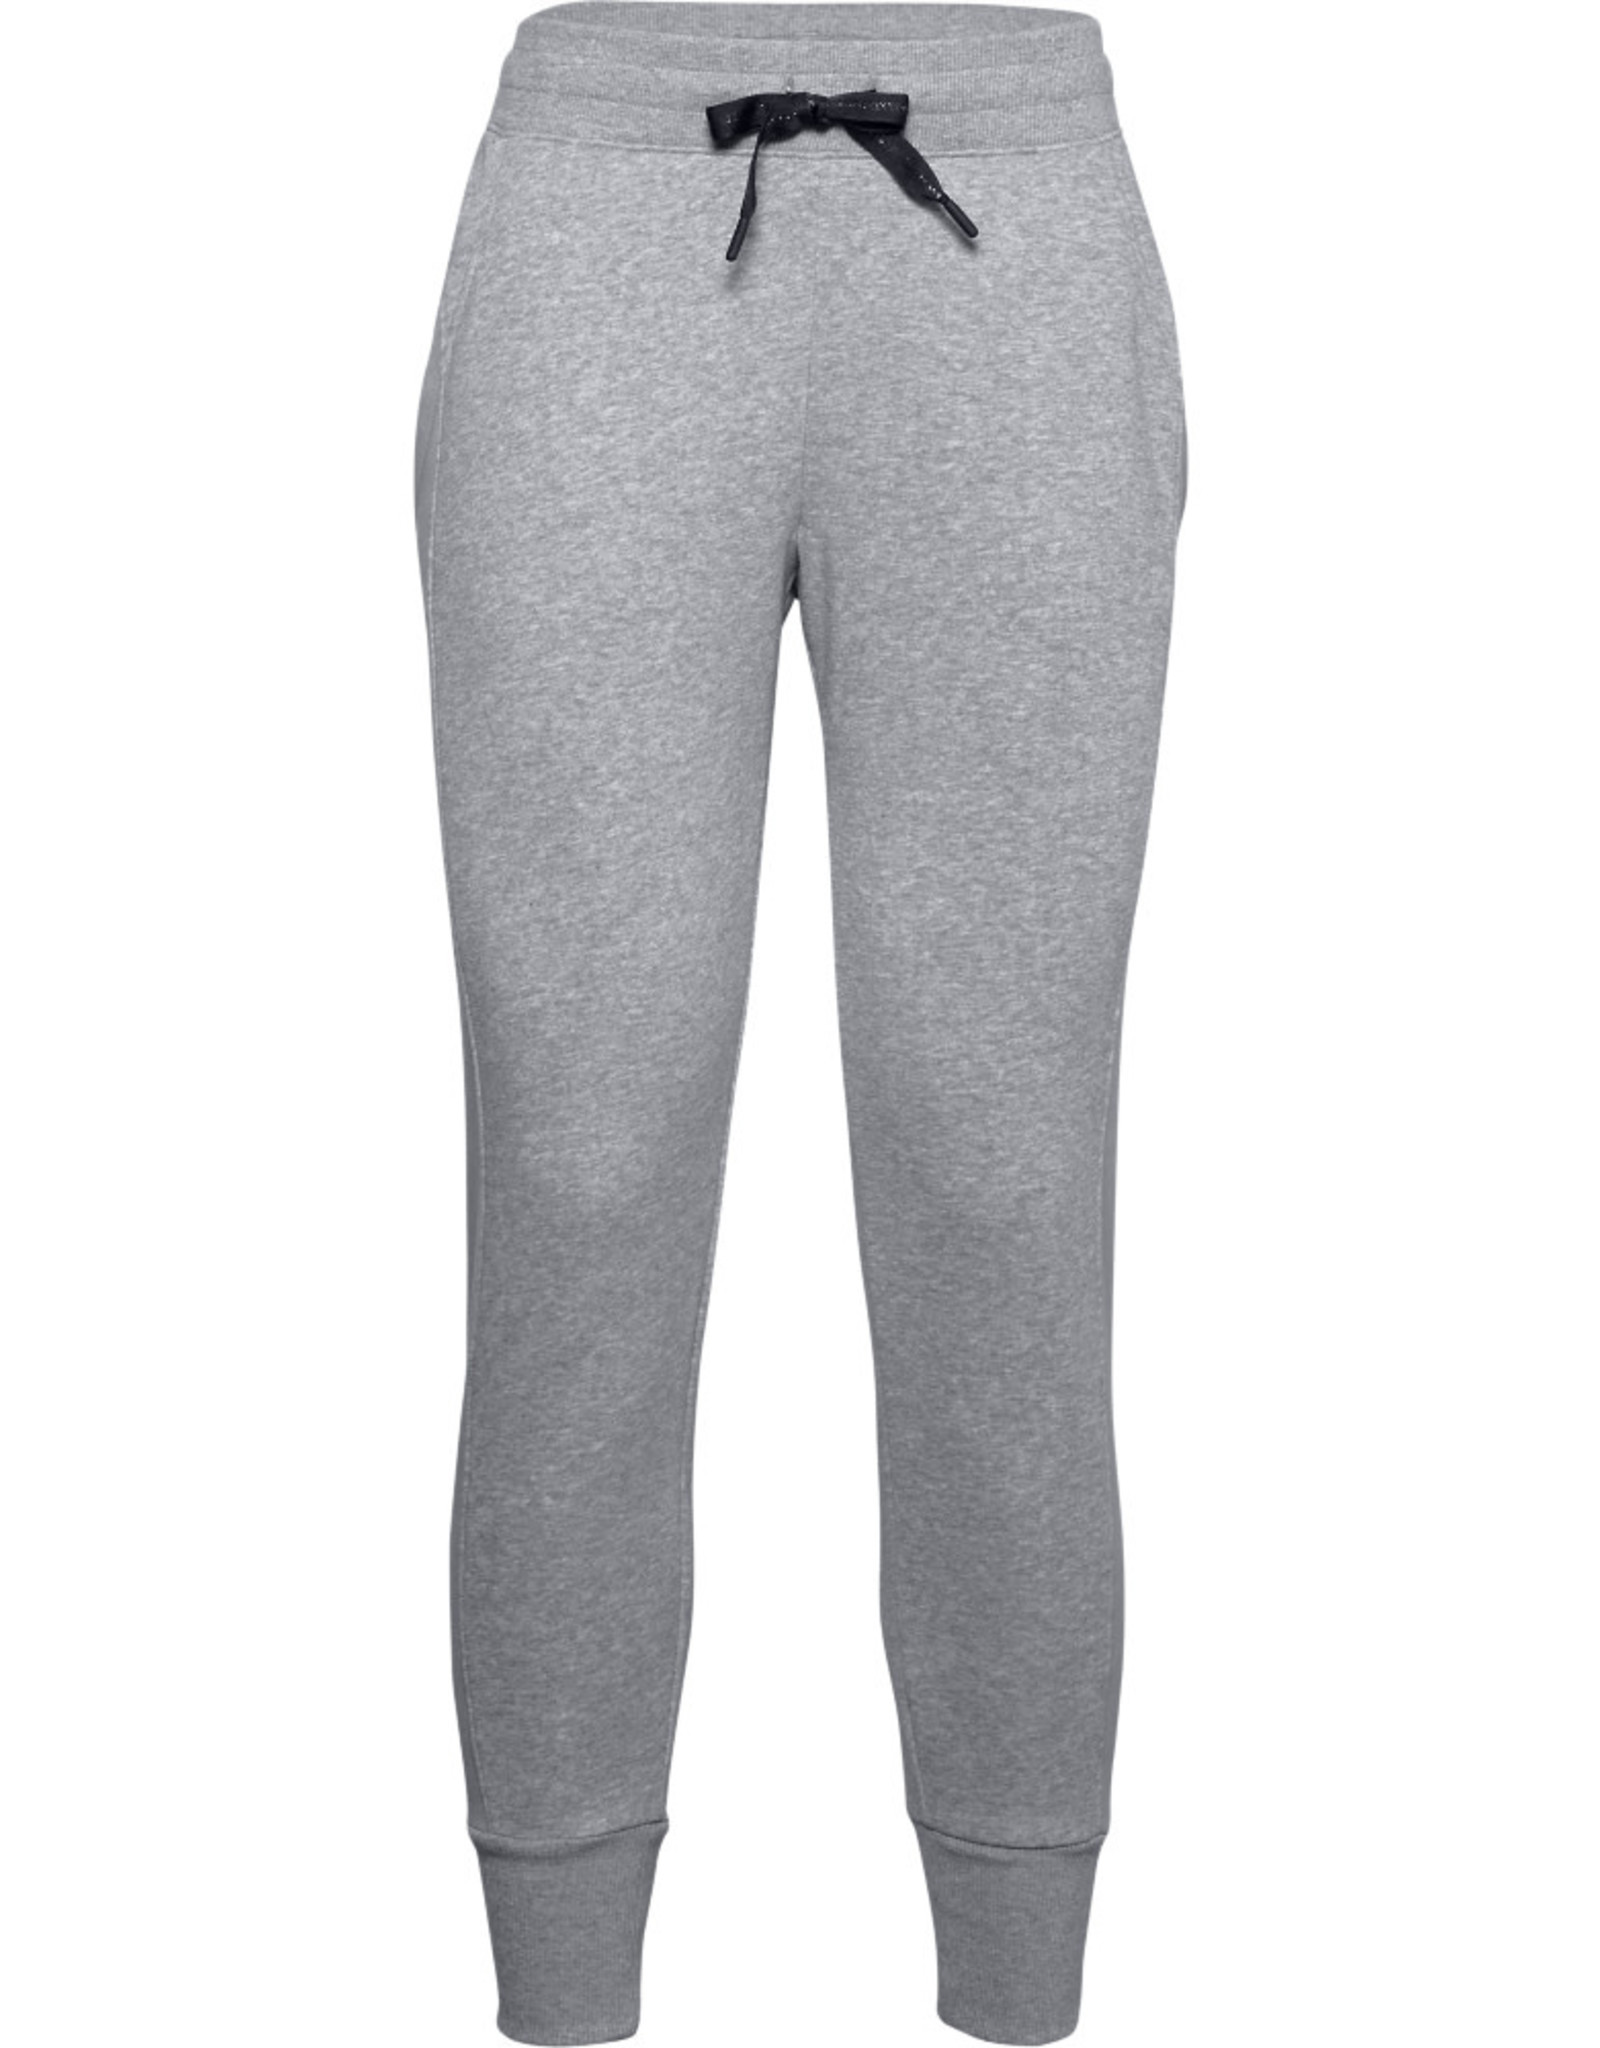 Under Armour UA Rival Fleece EMB Pant - STEEL MEDIUM HEATHER-Steel-Black